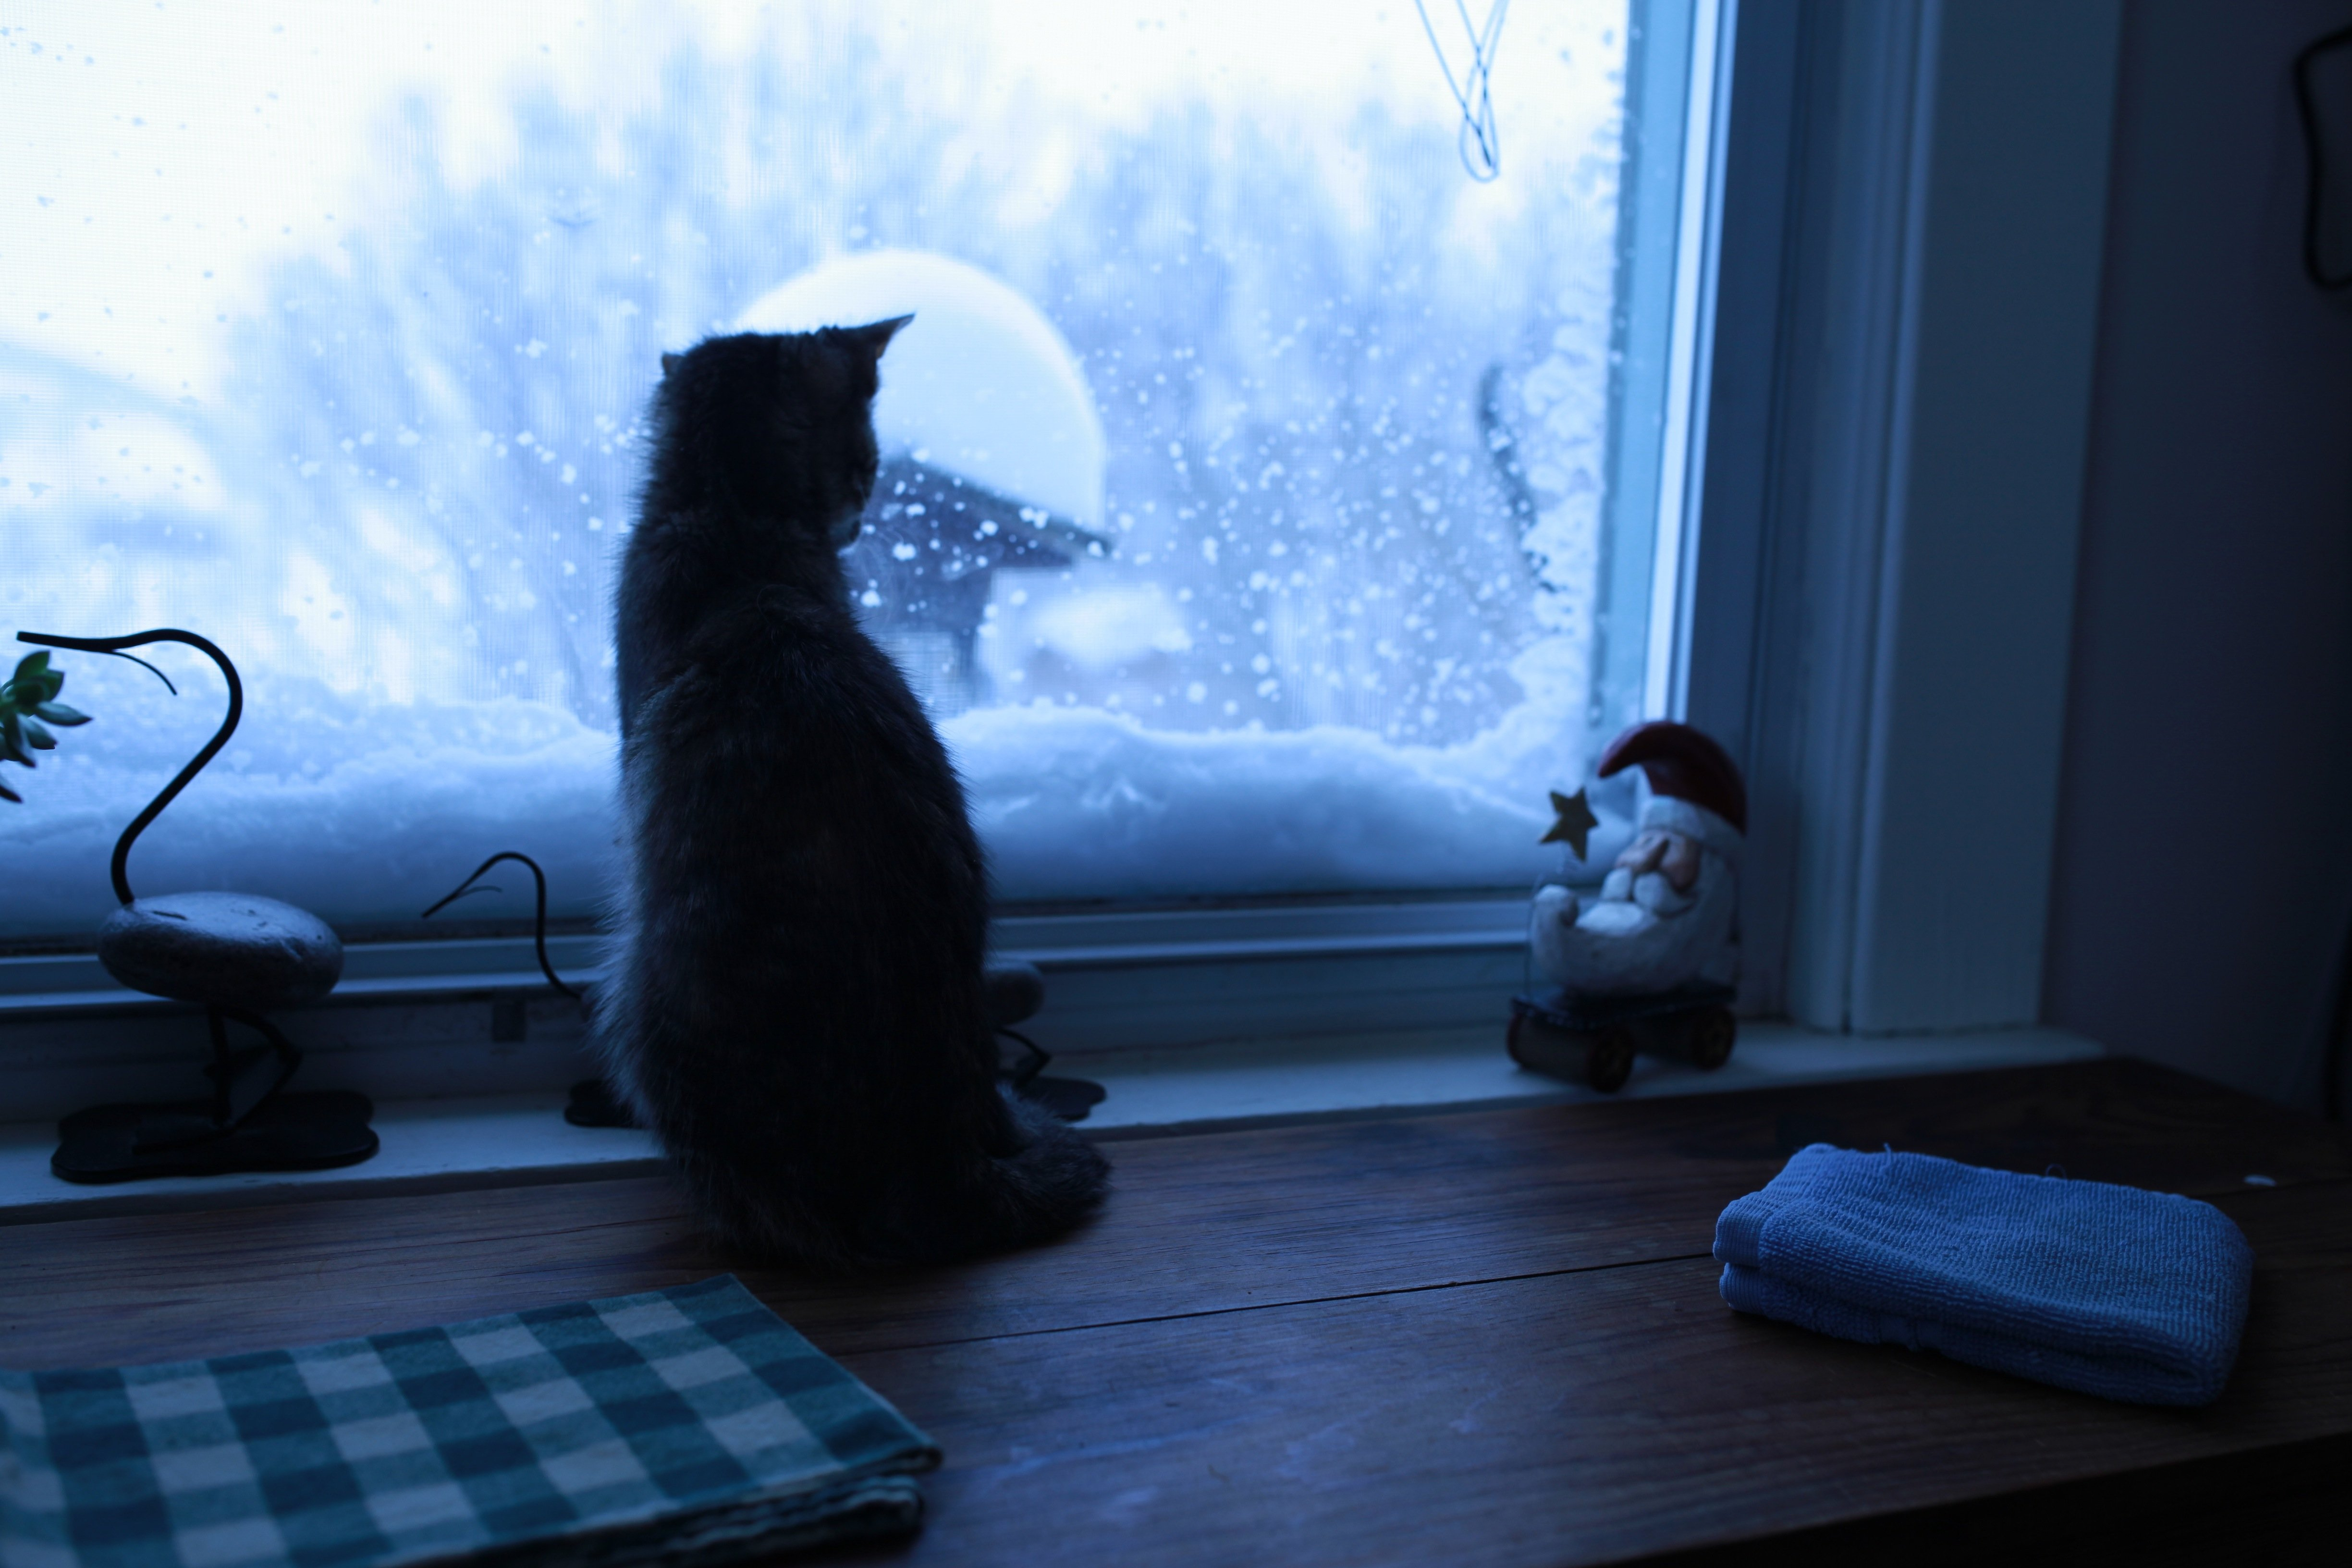 Jollie watching snow